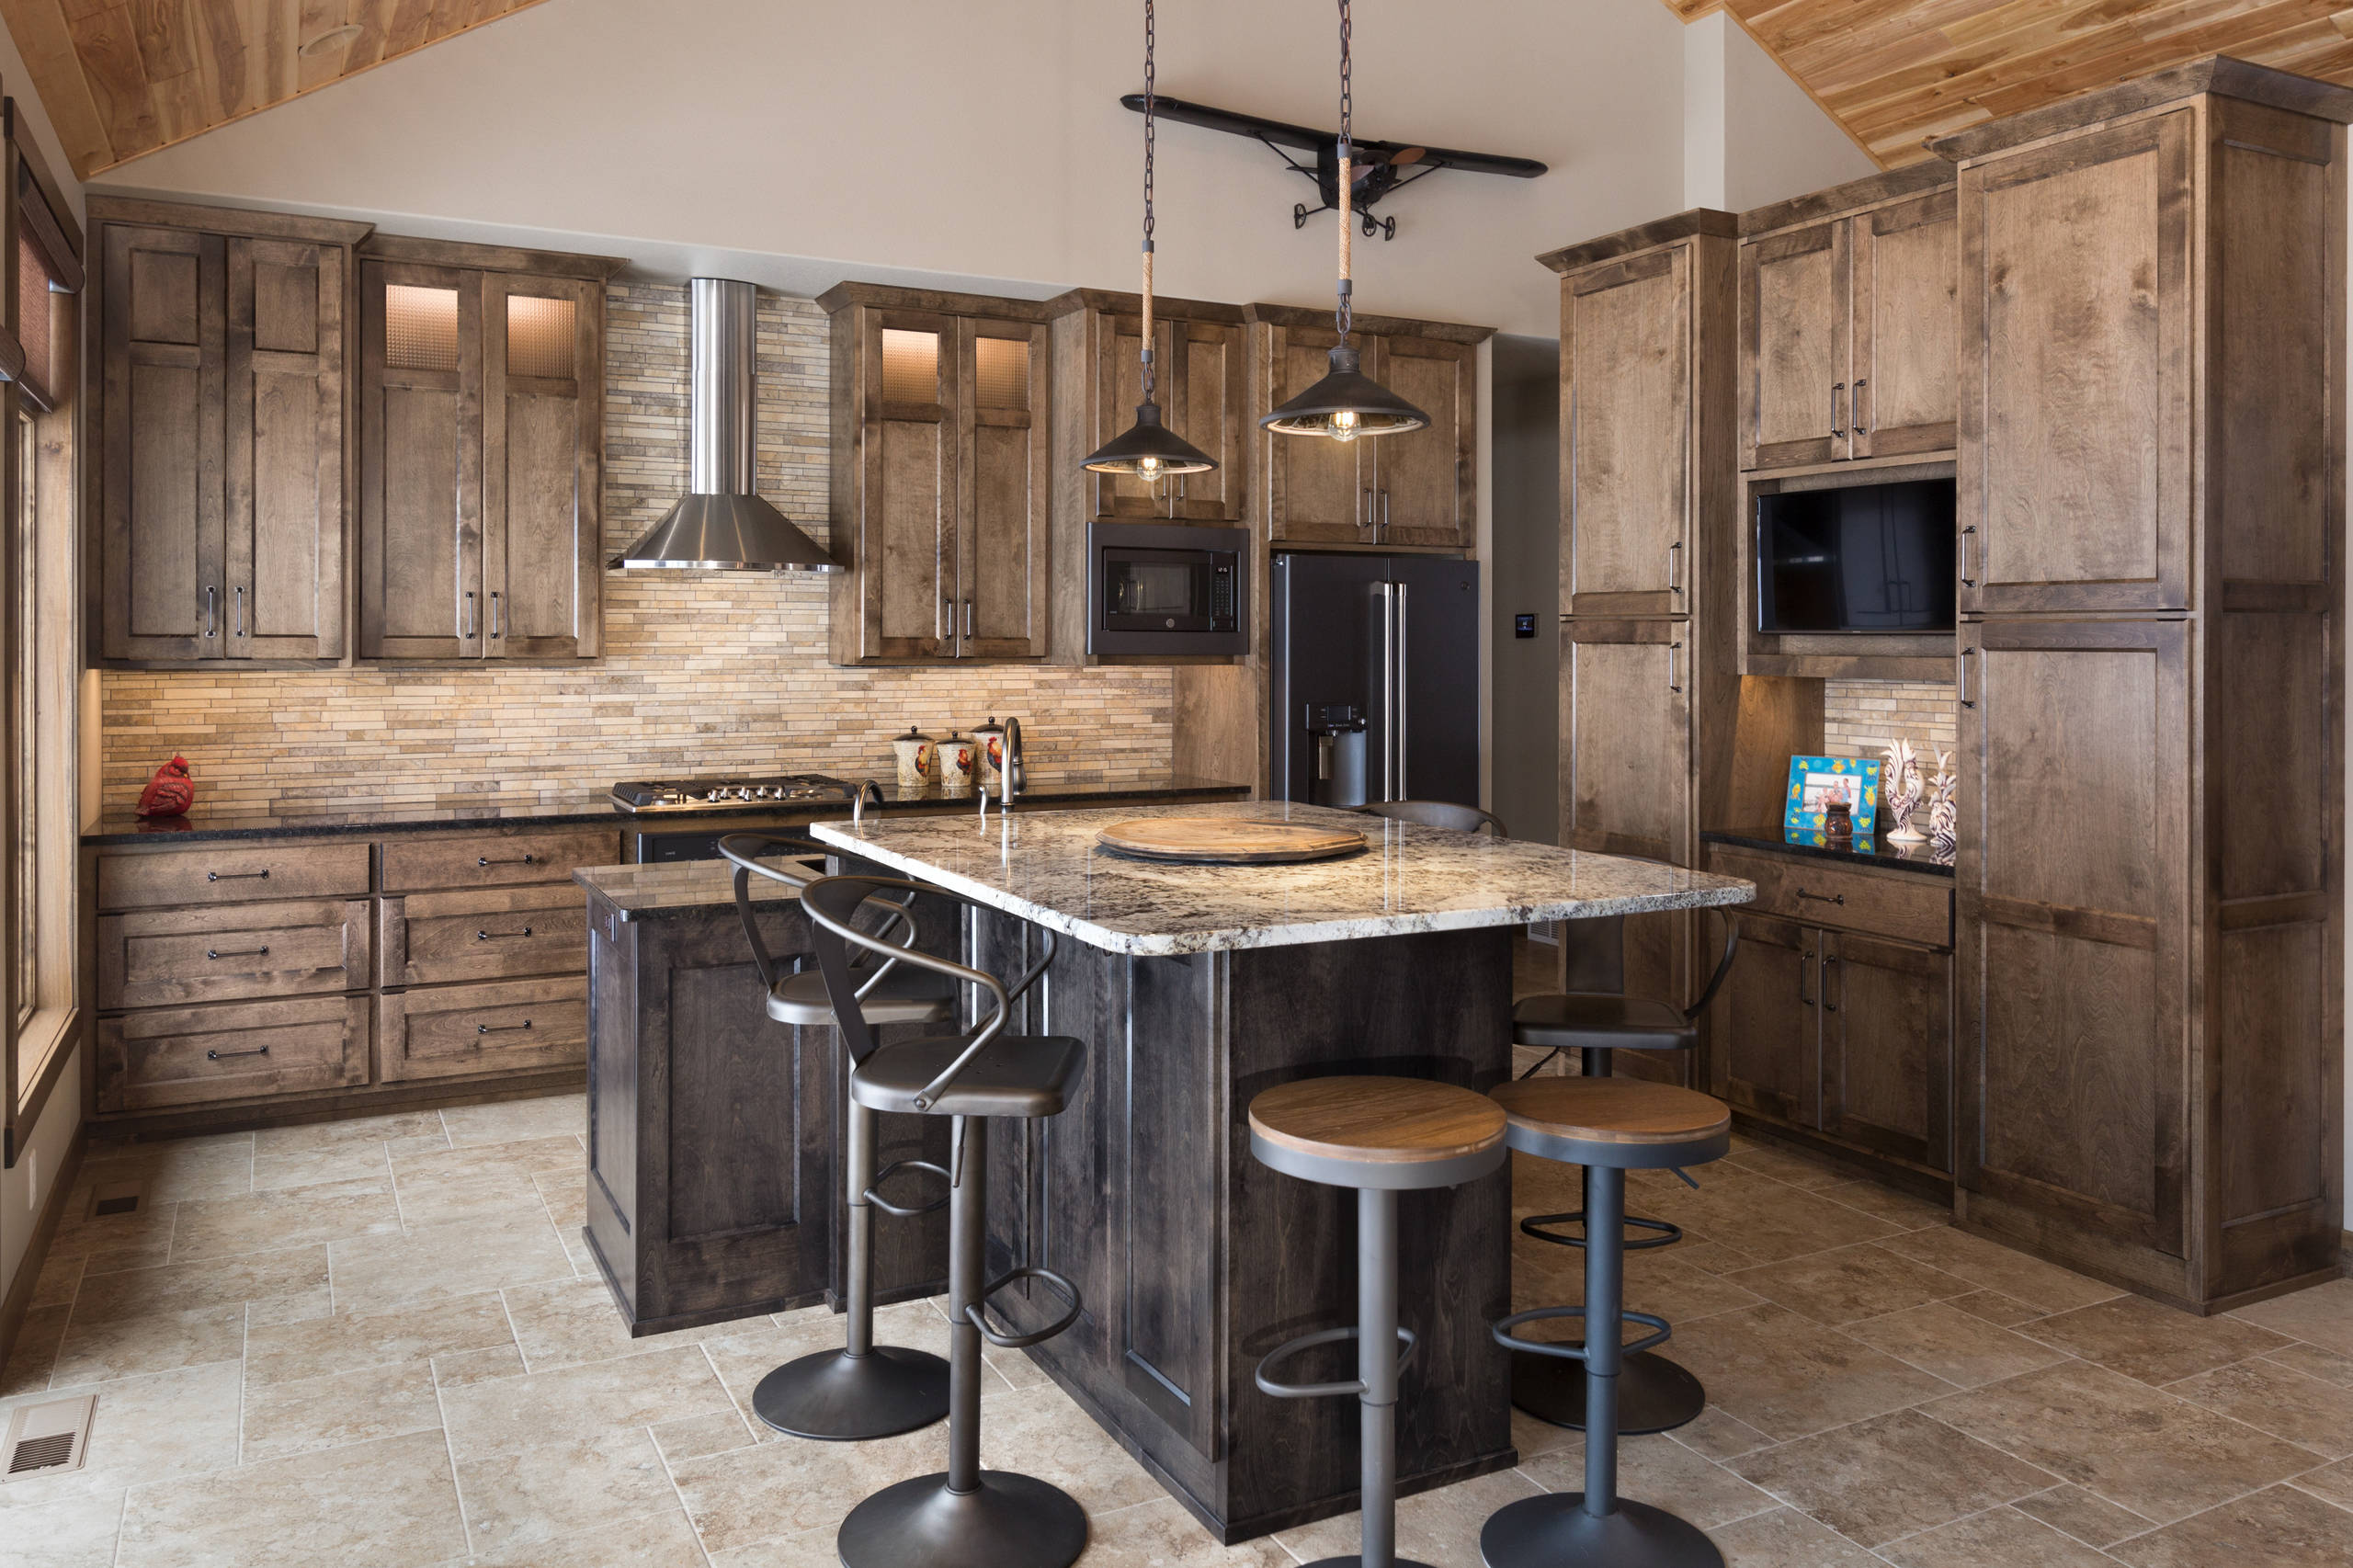 Cuisine D Angle Avec Bar 75 beautiful rustic l-shaped kitchen pictures & ideas | houzz